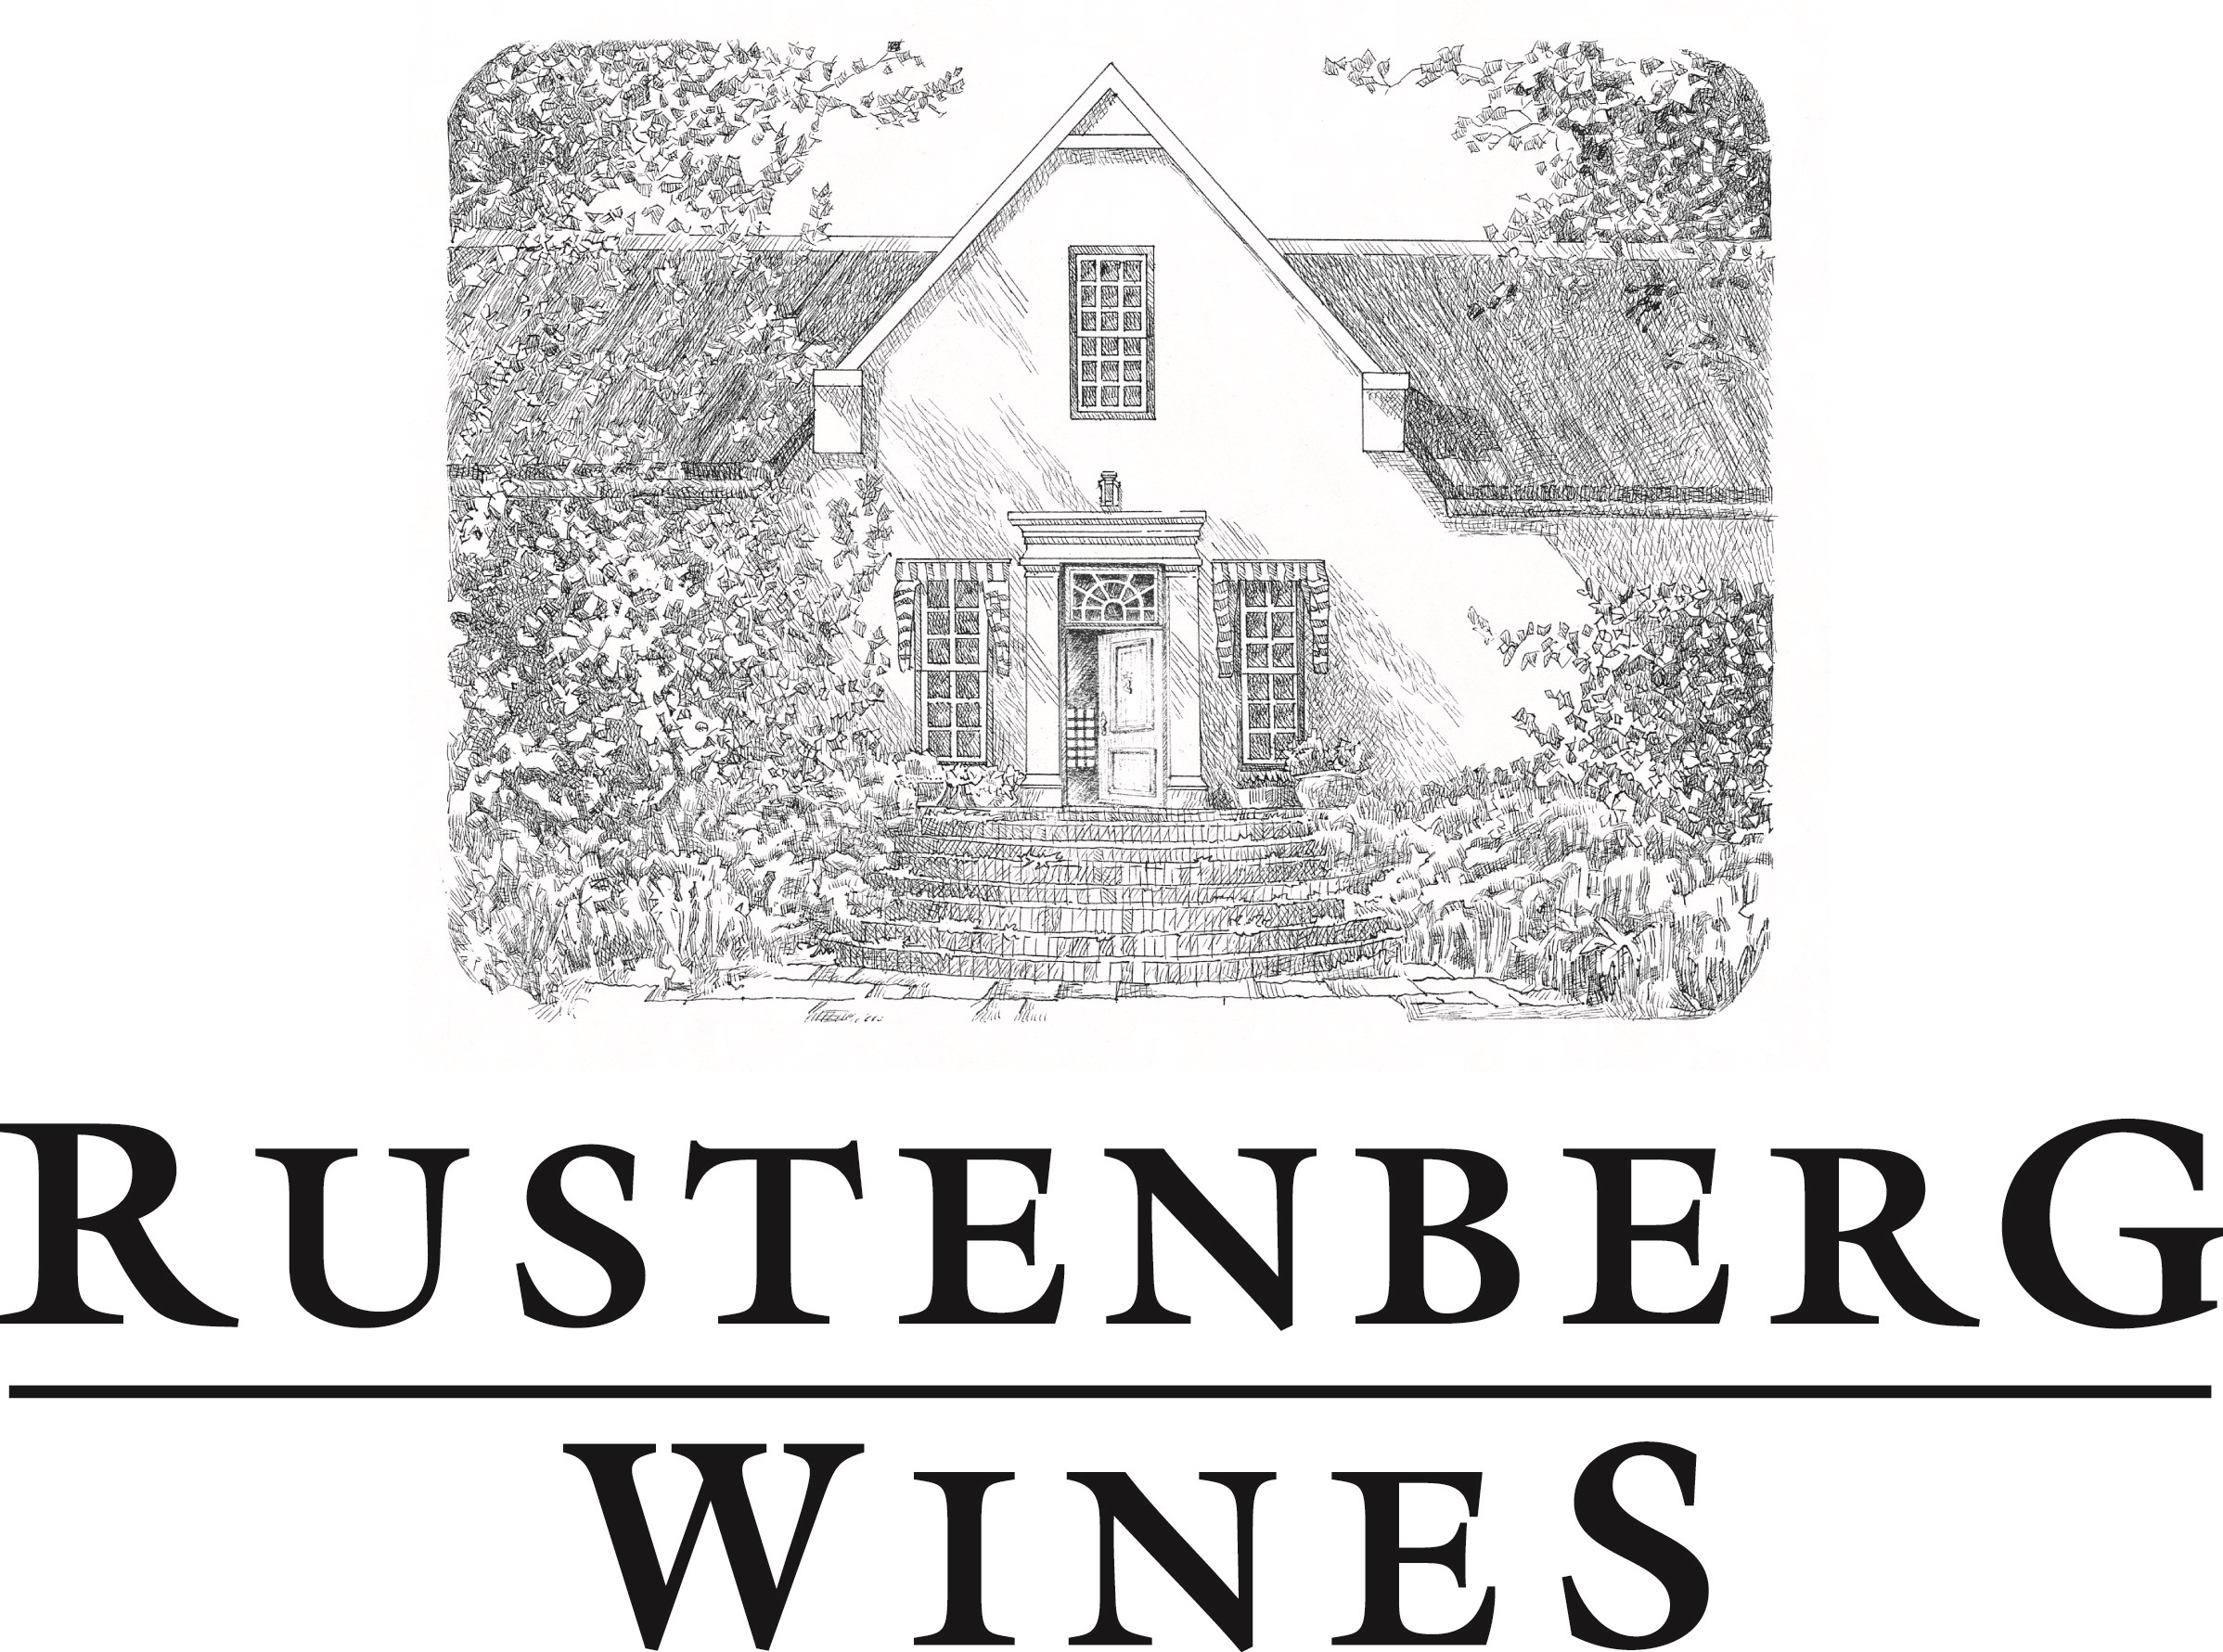 Rustenberg-logo-small-secured.jpg